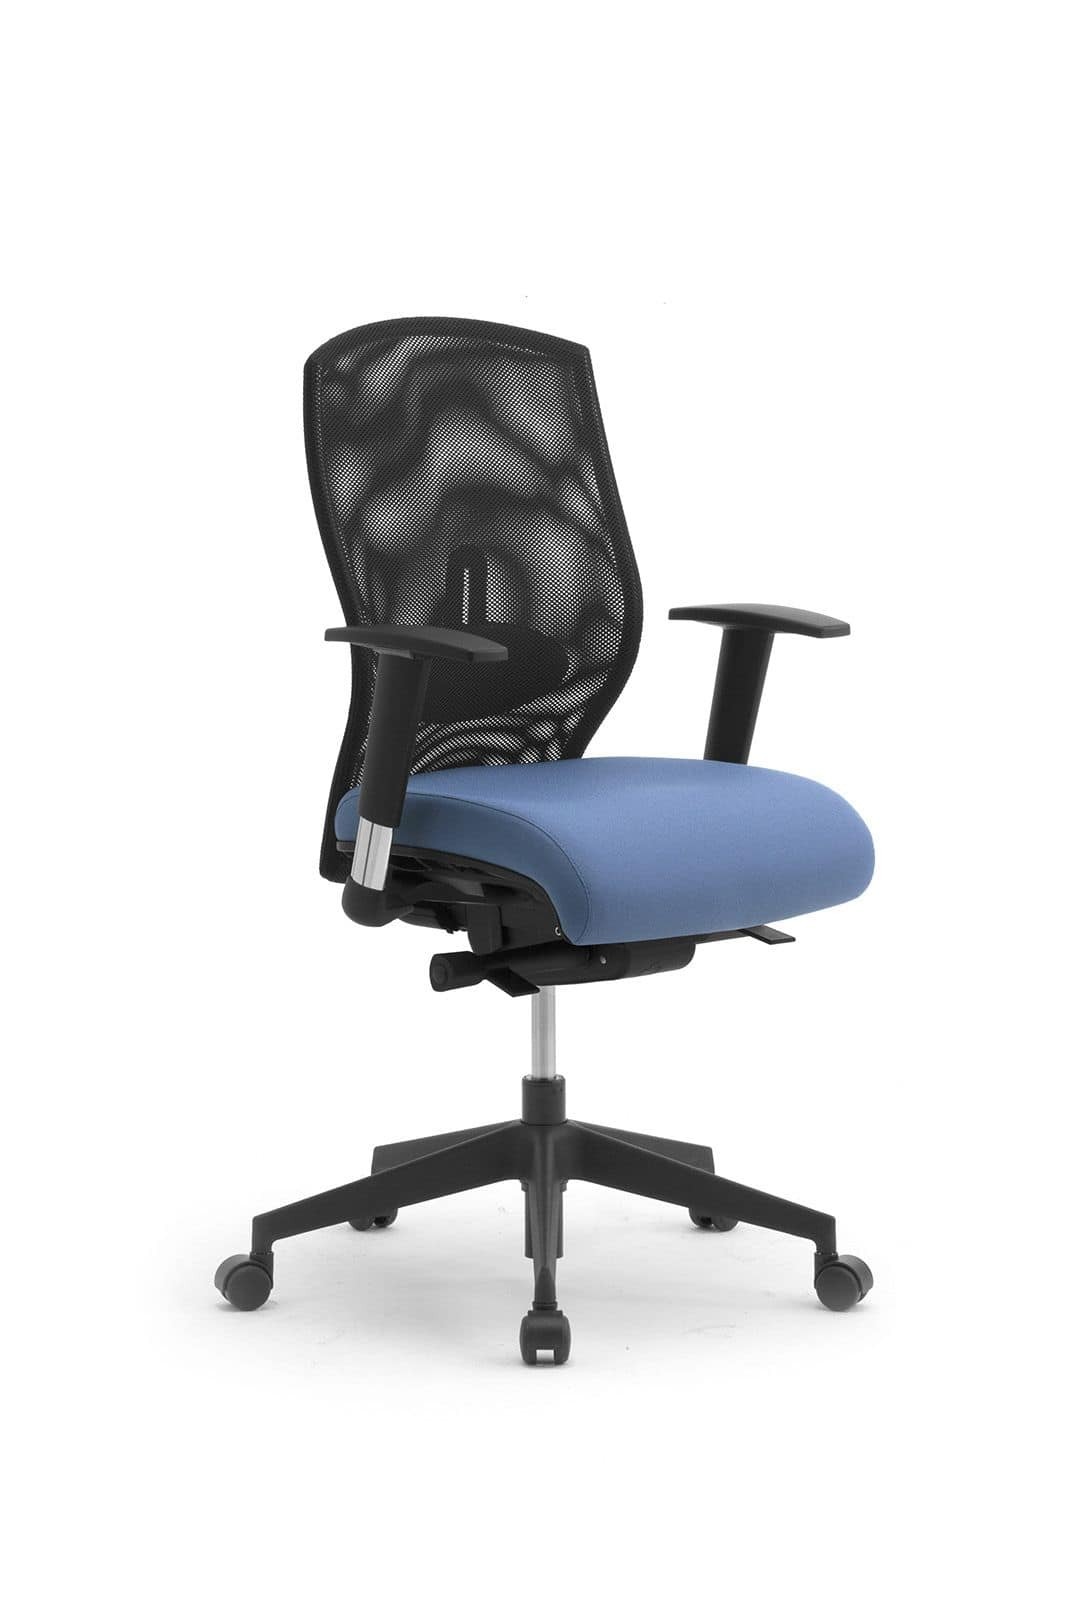 office chairs with wheels walgreens shower chair on backrest in mesh idfdesign